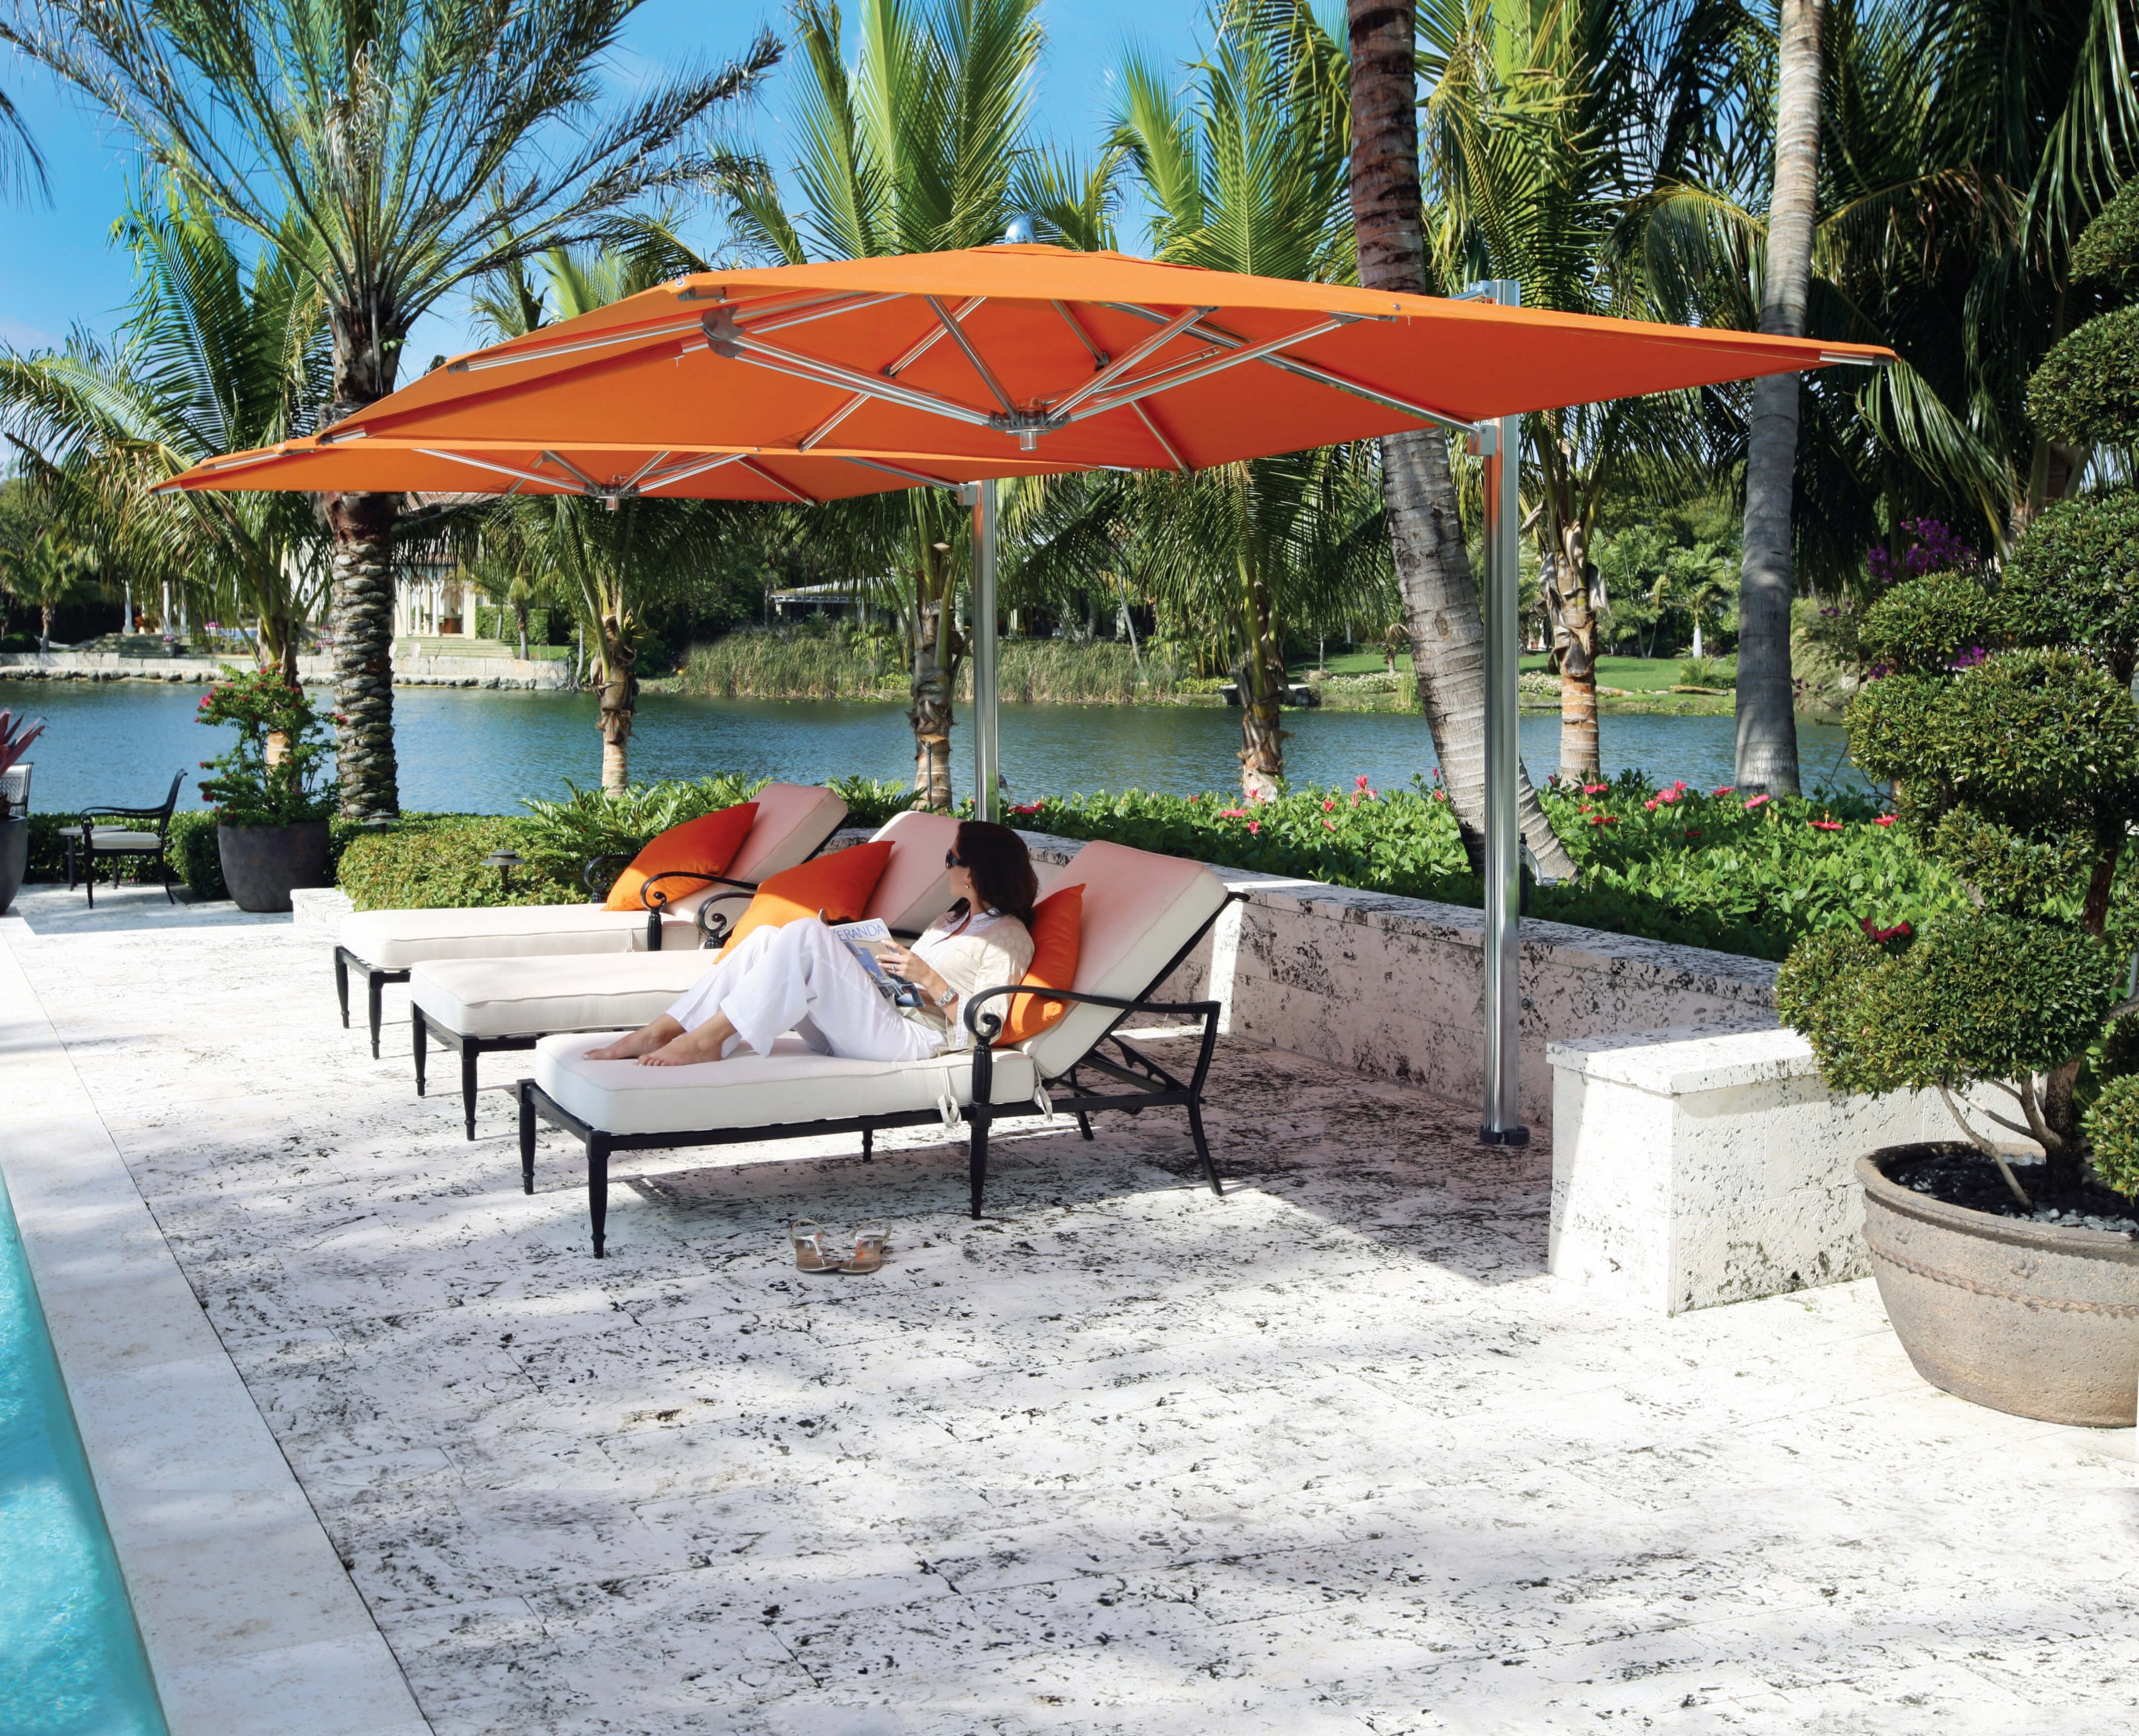 Outdoor Furniture Canopy Fabric Umbrella 124074 & Outdoor Furniture Outdoor/Patio Canopy Fabric Umbrella 124074 ...